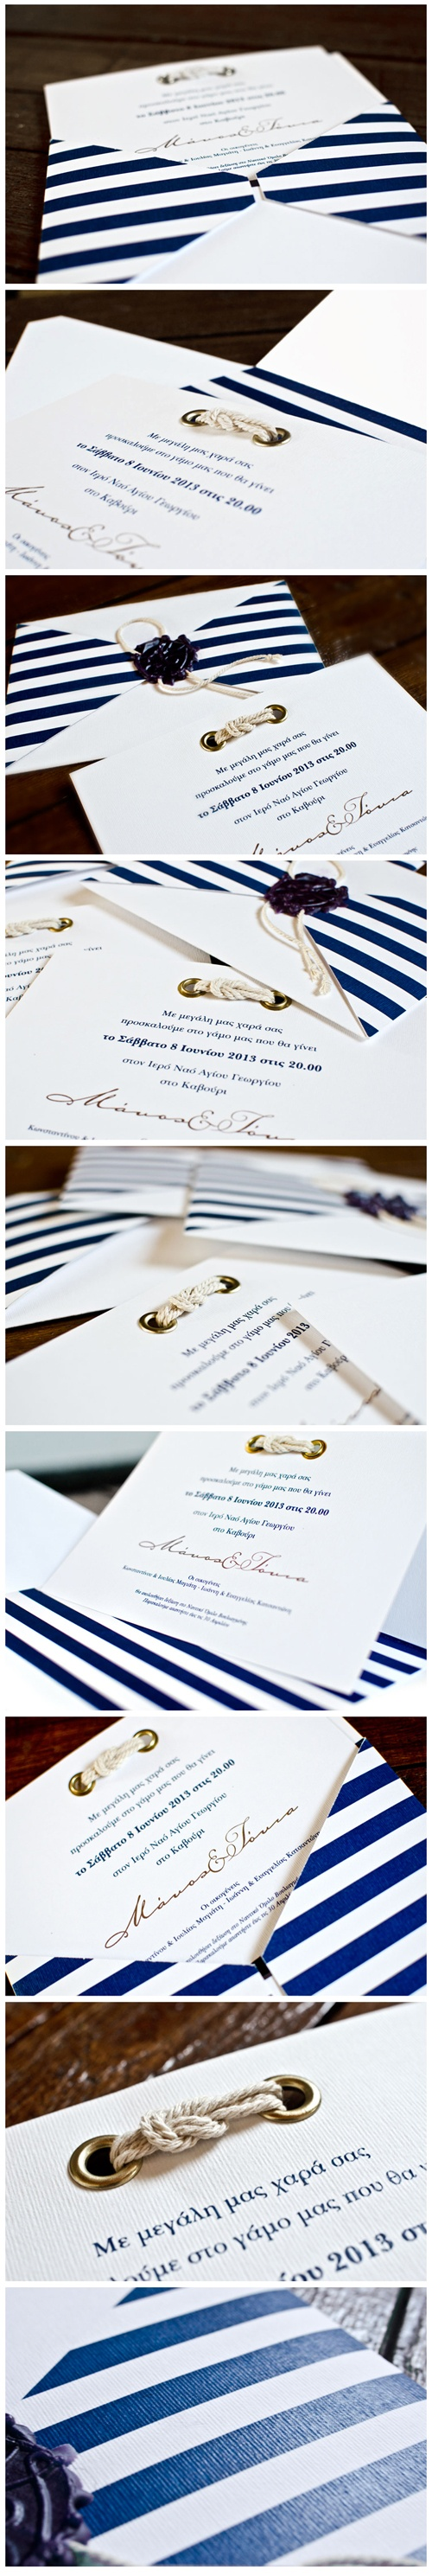 21 best Wedding invites images on Pinterest